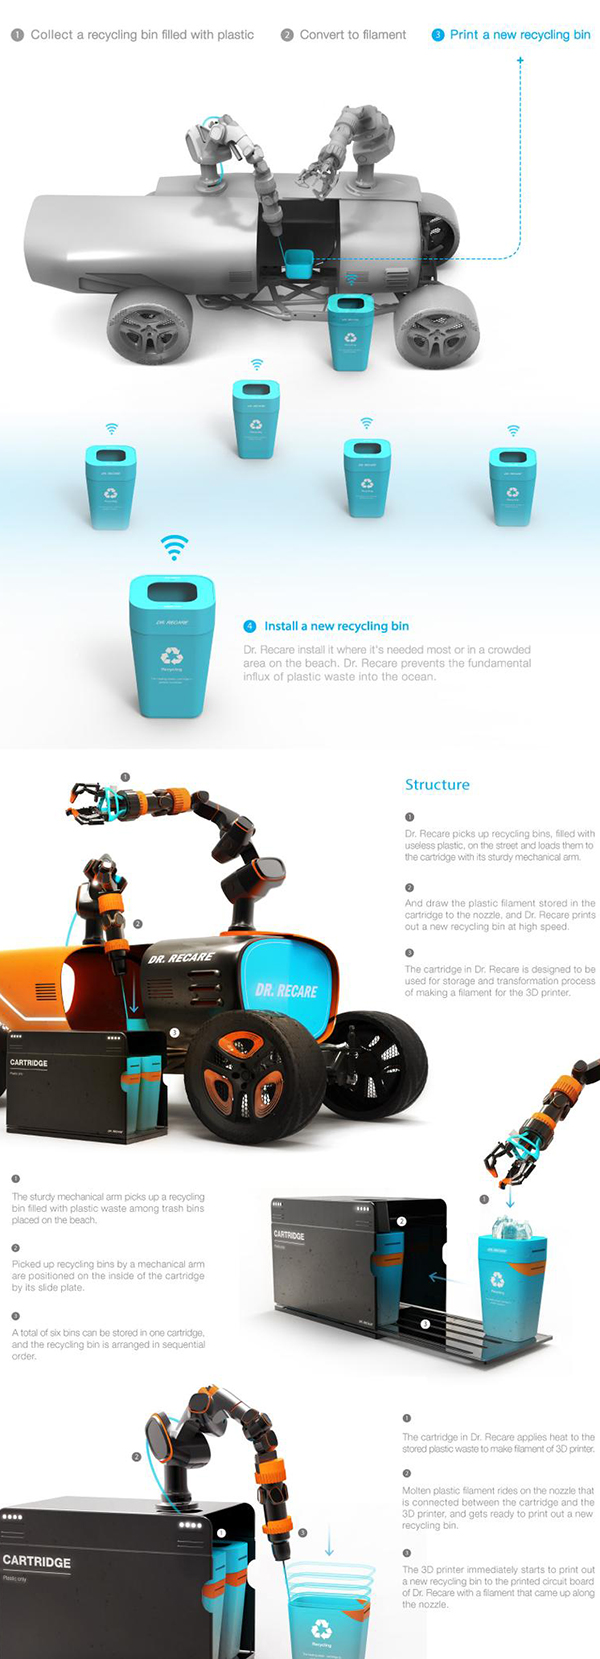 Automated 3D printing robot helps to keep beaches clean